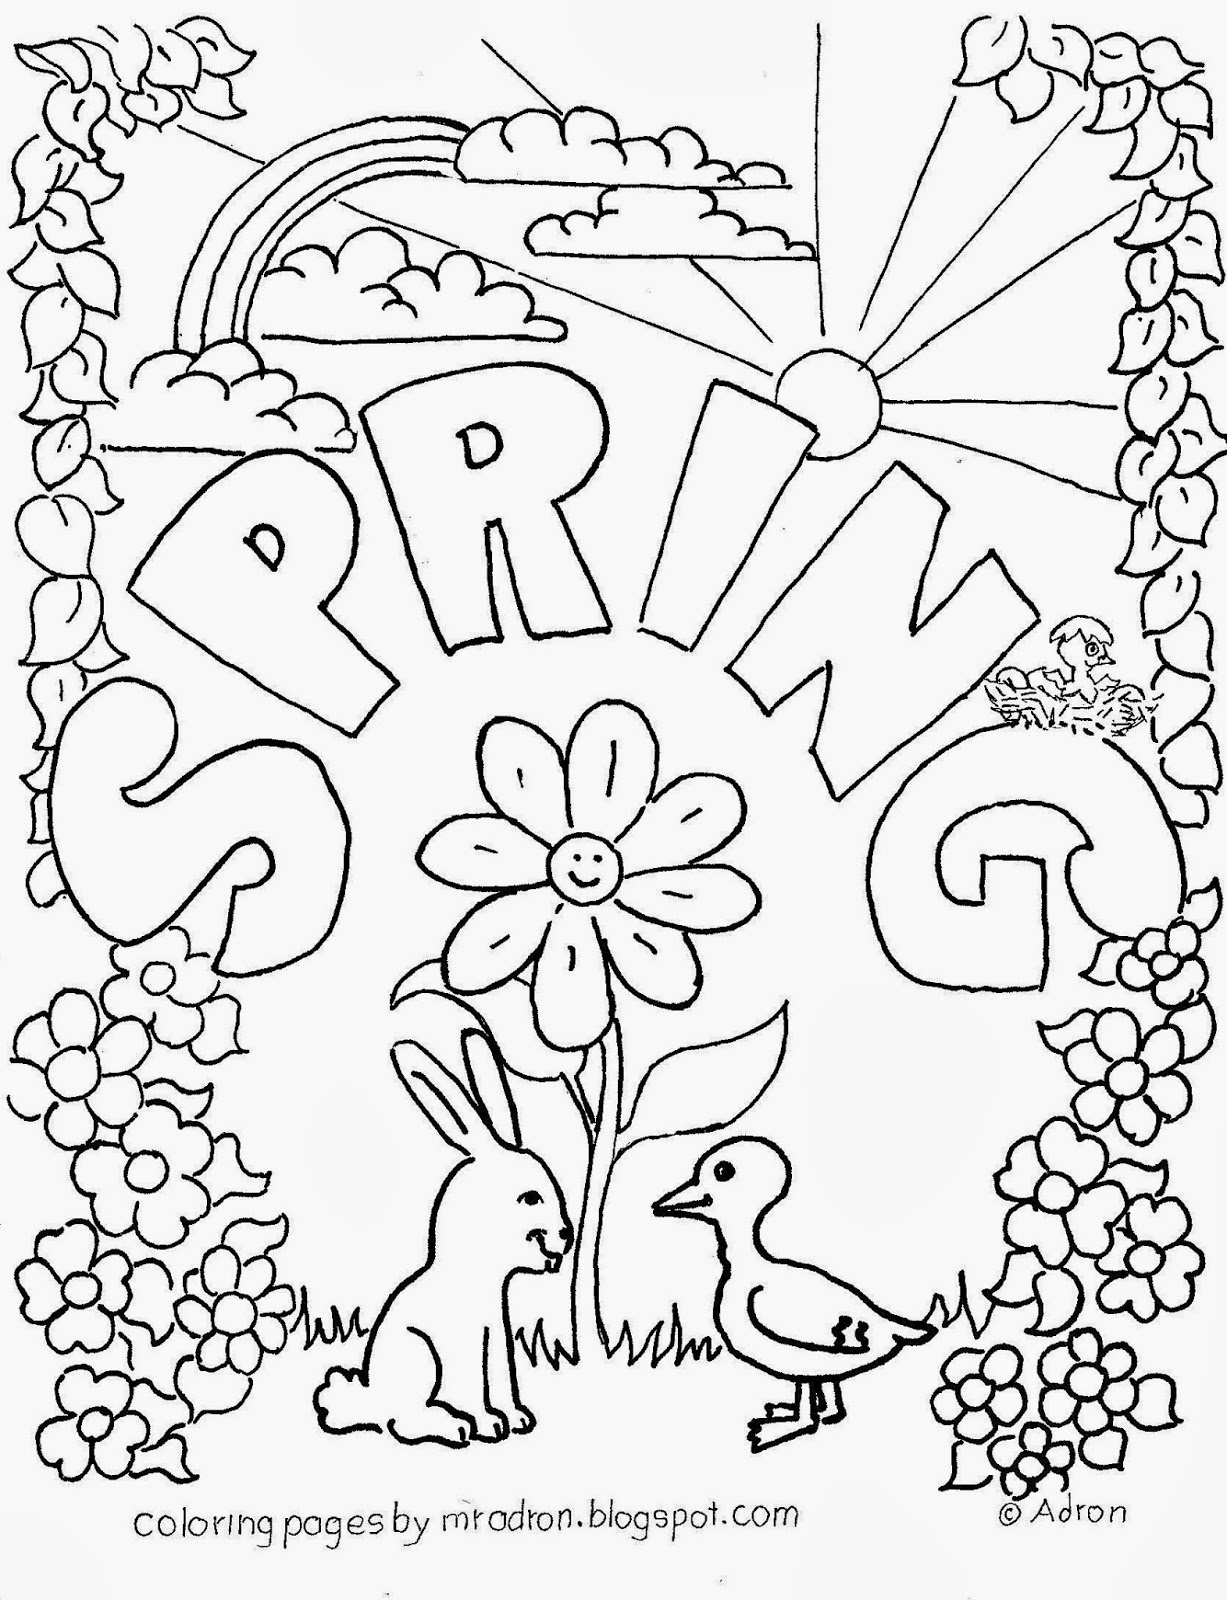 An illustration of Spring to print and color.